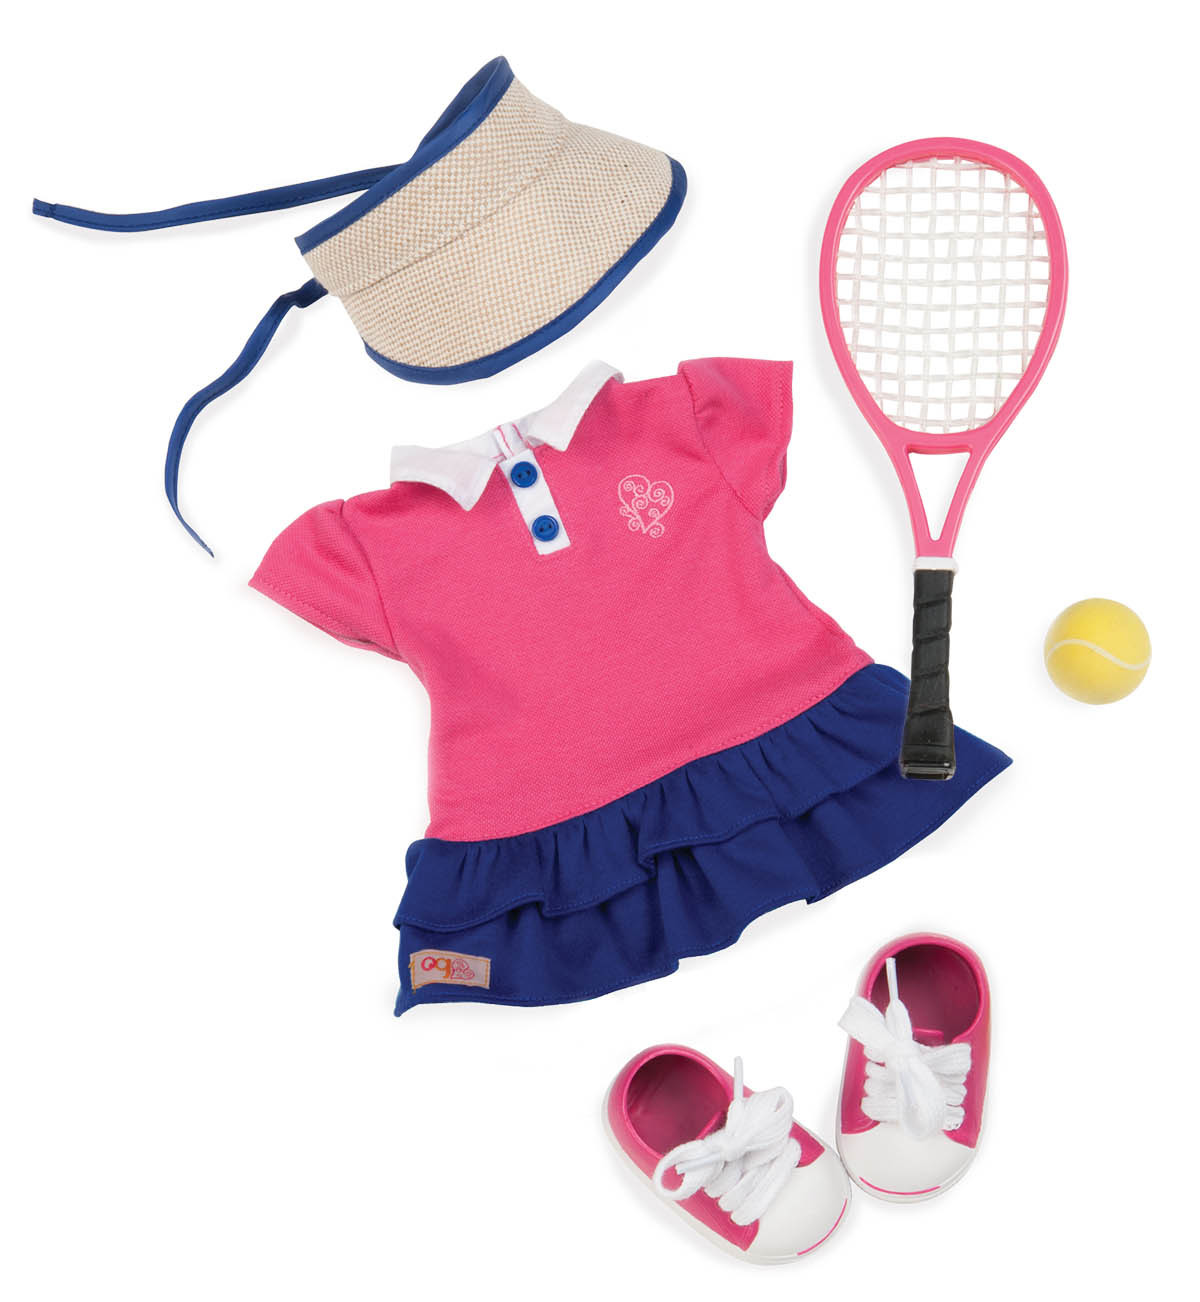 Our Generation: Regular Outfit - AceD It! Tennis Outfit image